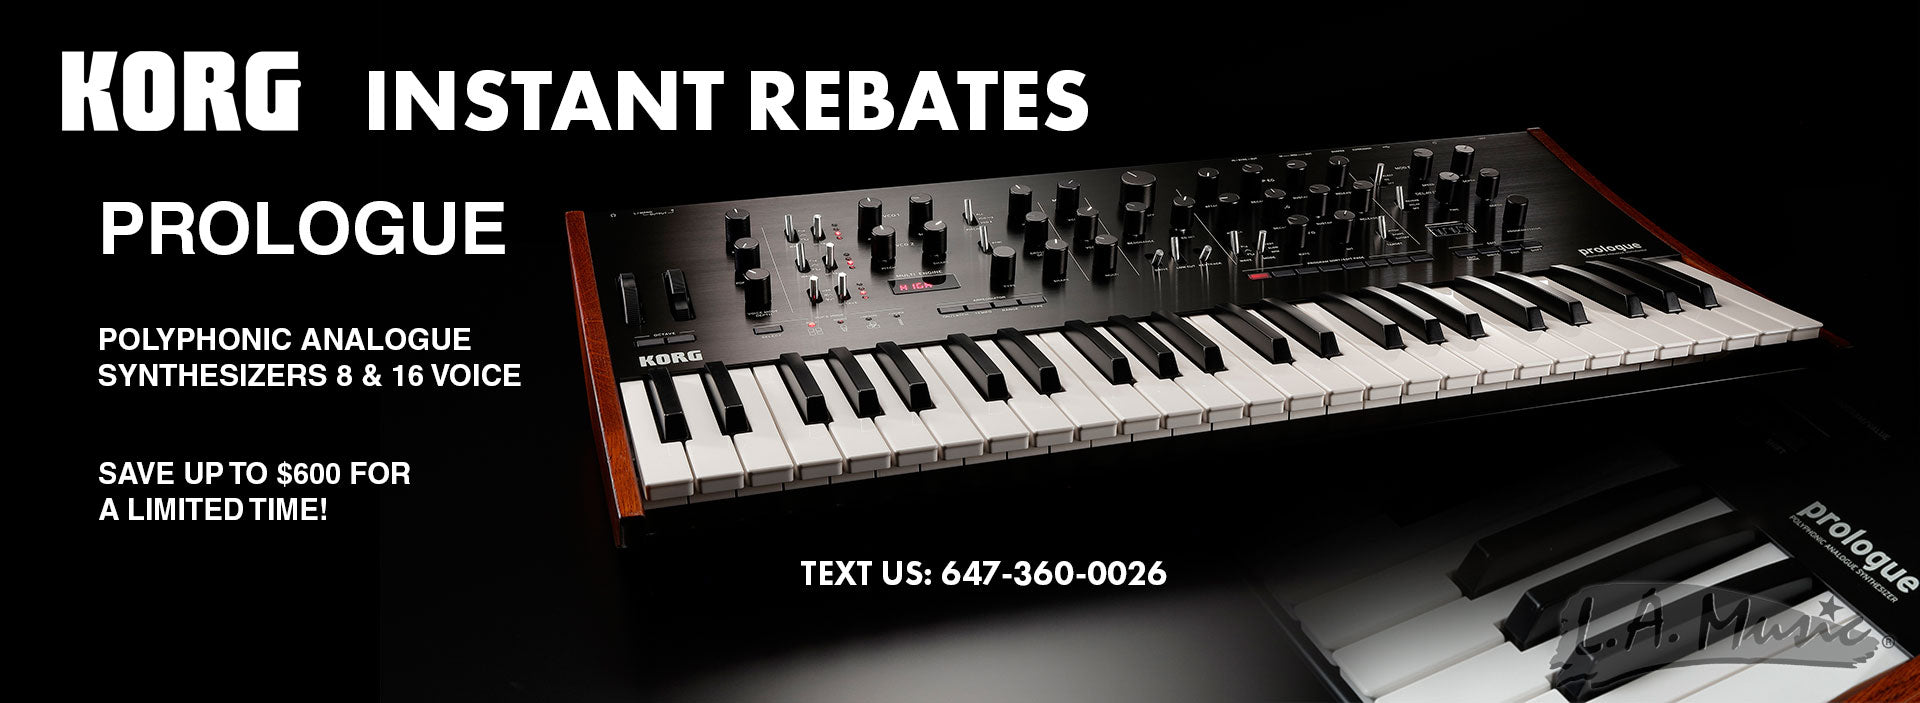 Korg Prologue Instant Rebates